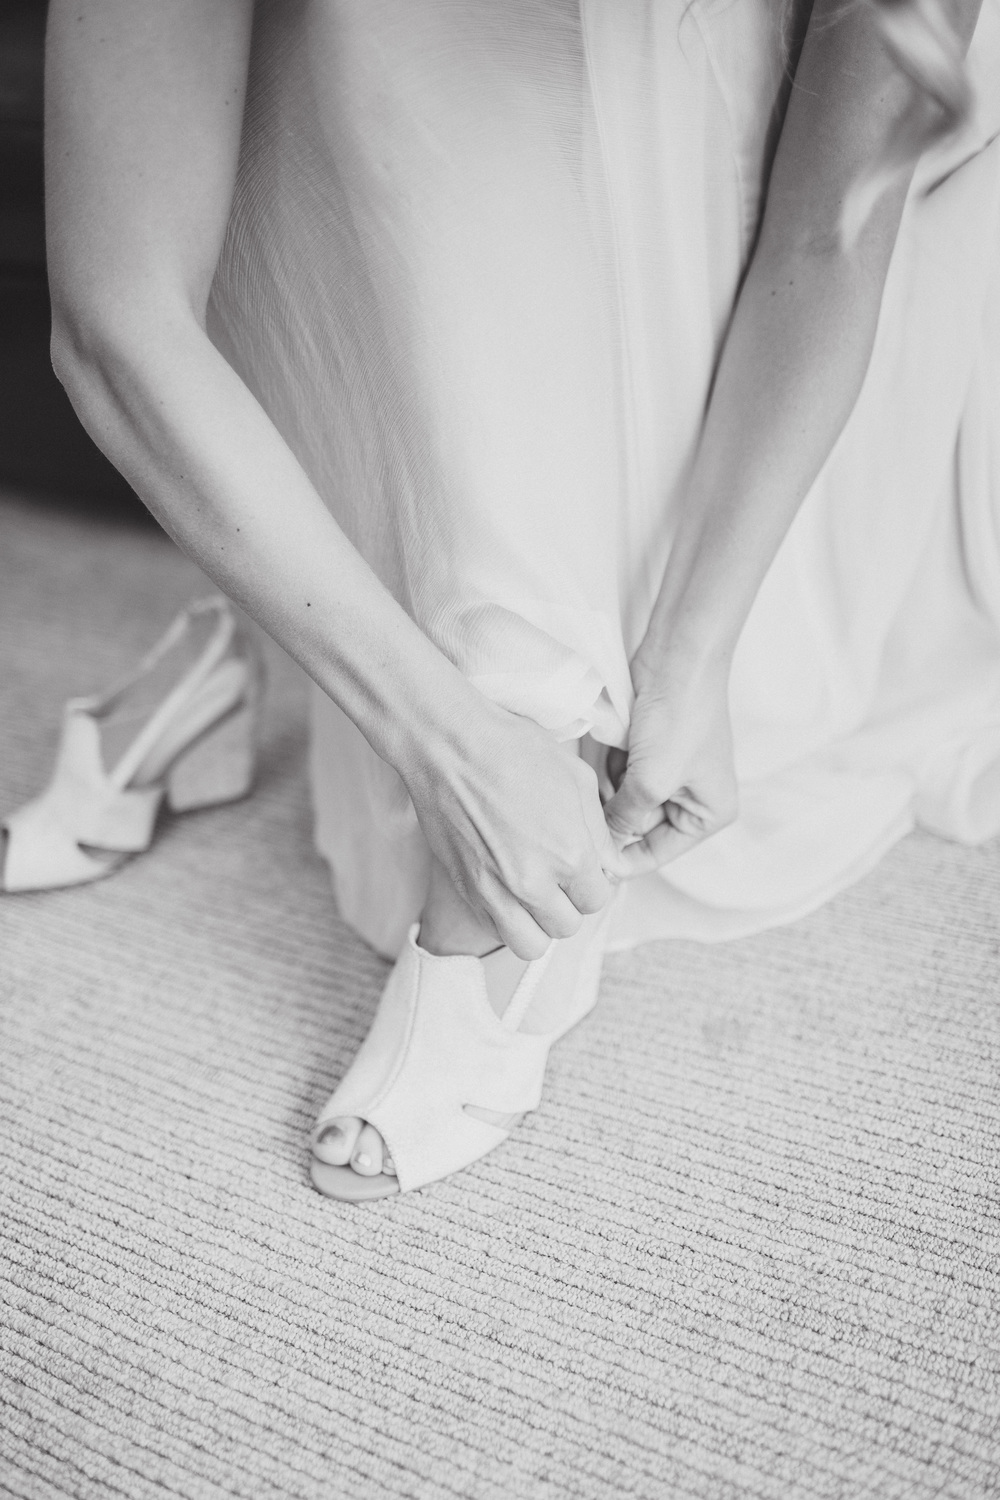 BakerWeddingSep2014 (24 of 841).jpg